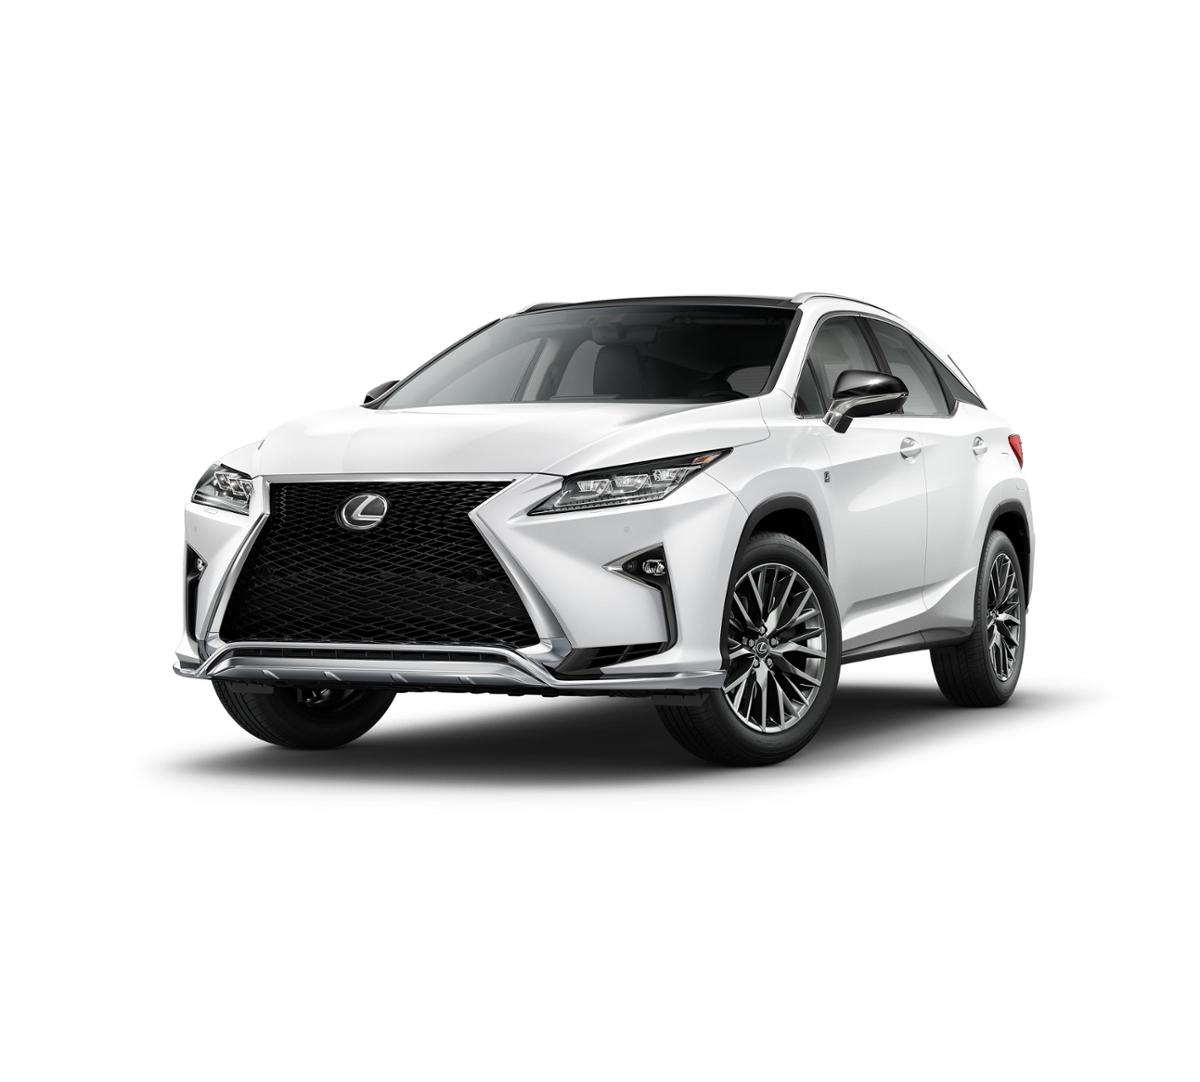 hight resolution of 2019 lexus rx 350 vehicle photo in houston tx 77090